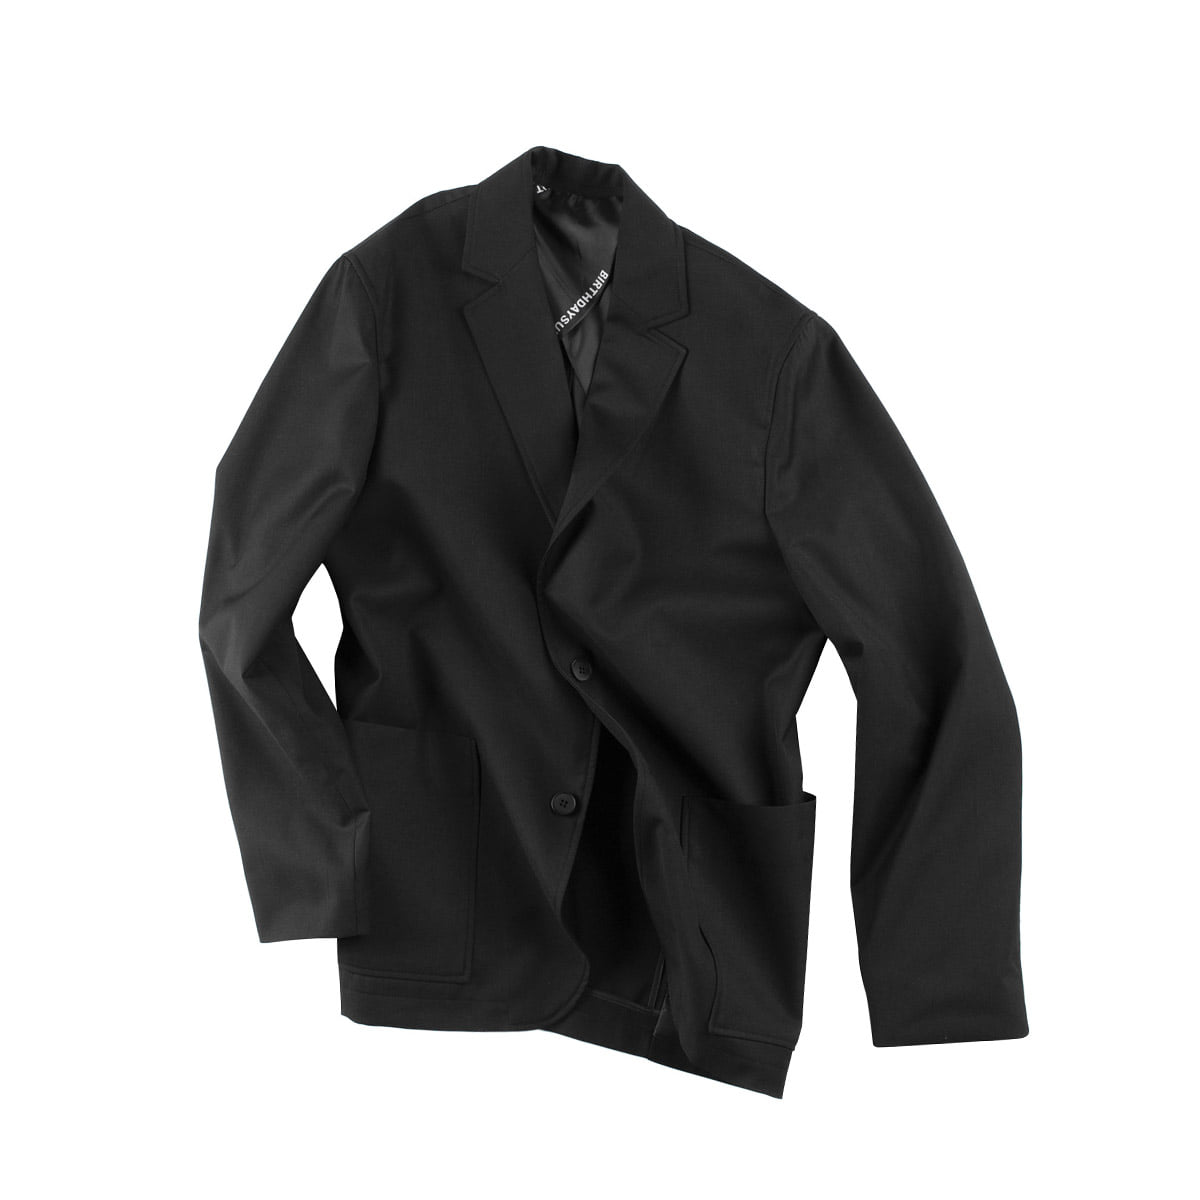 [BIRTHDAYSUIT] DAILY SUIT JACKET 'BLACK'